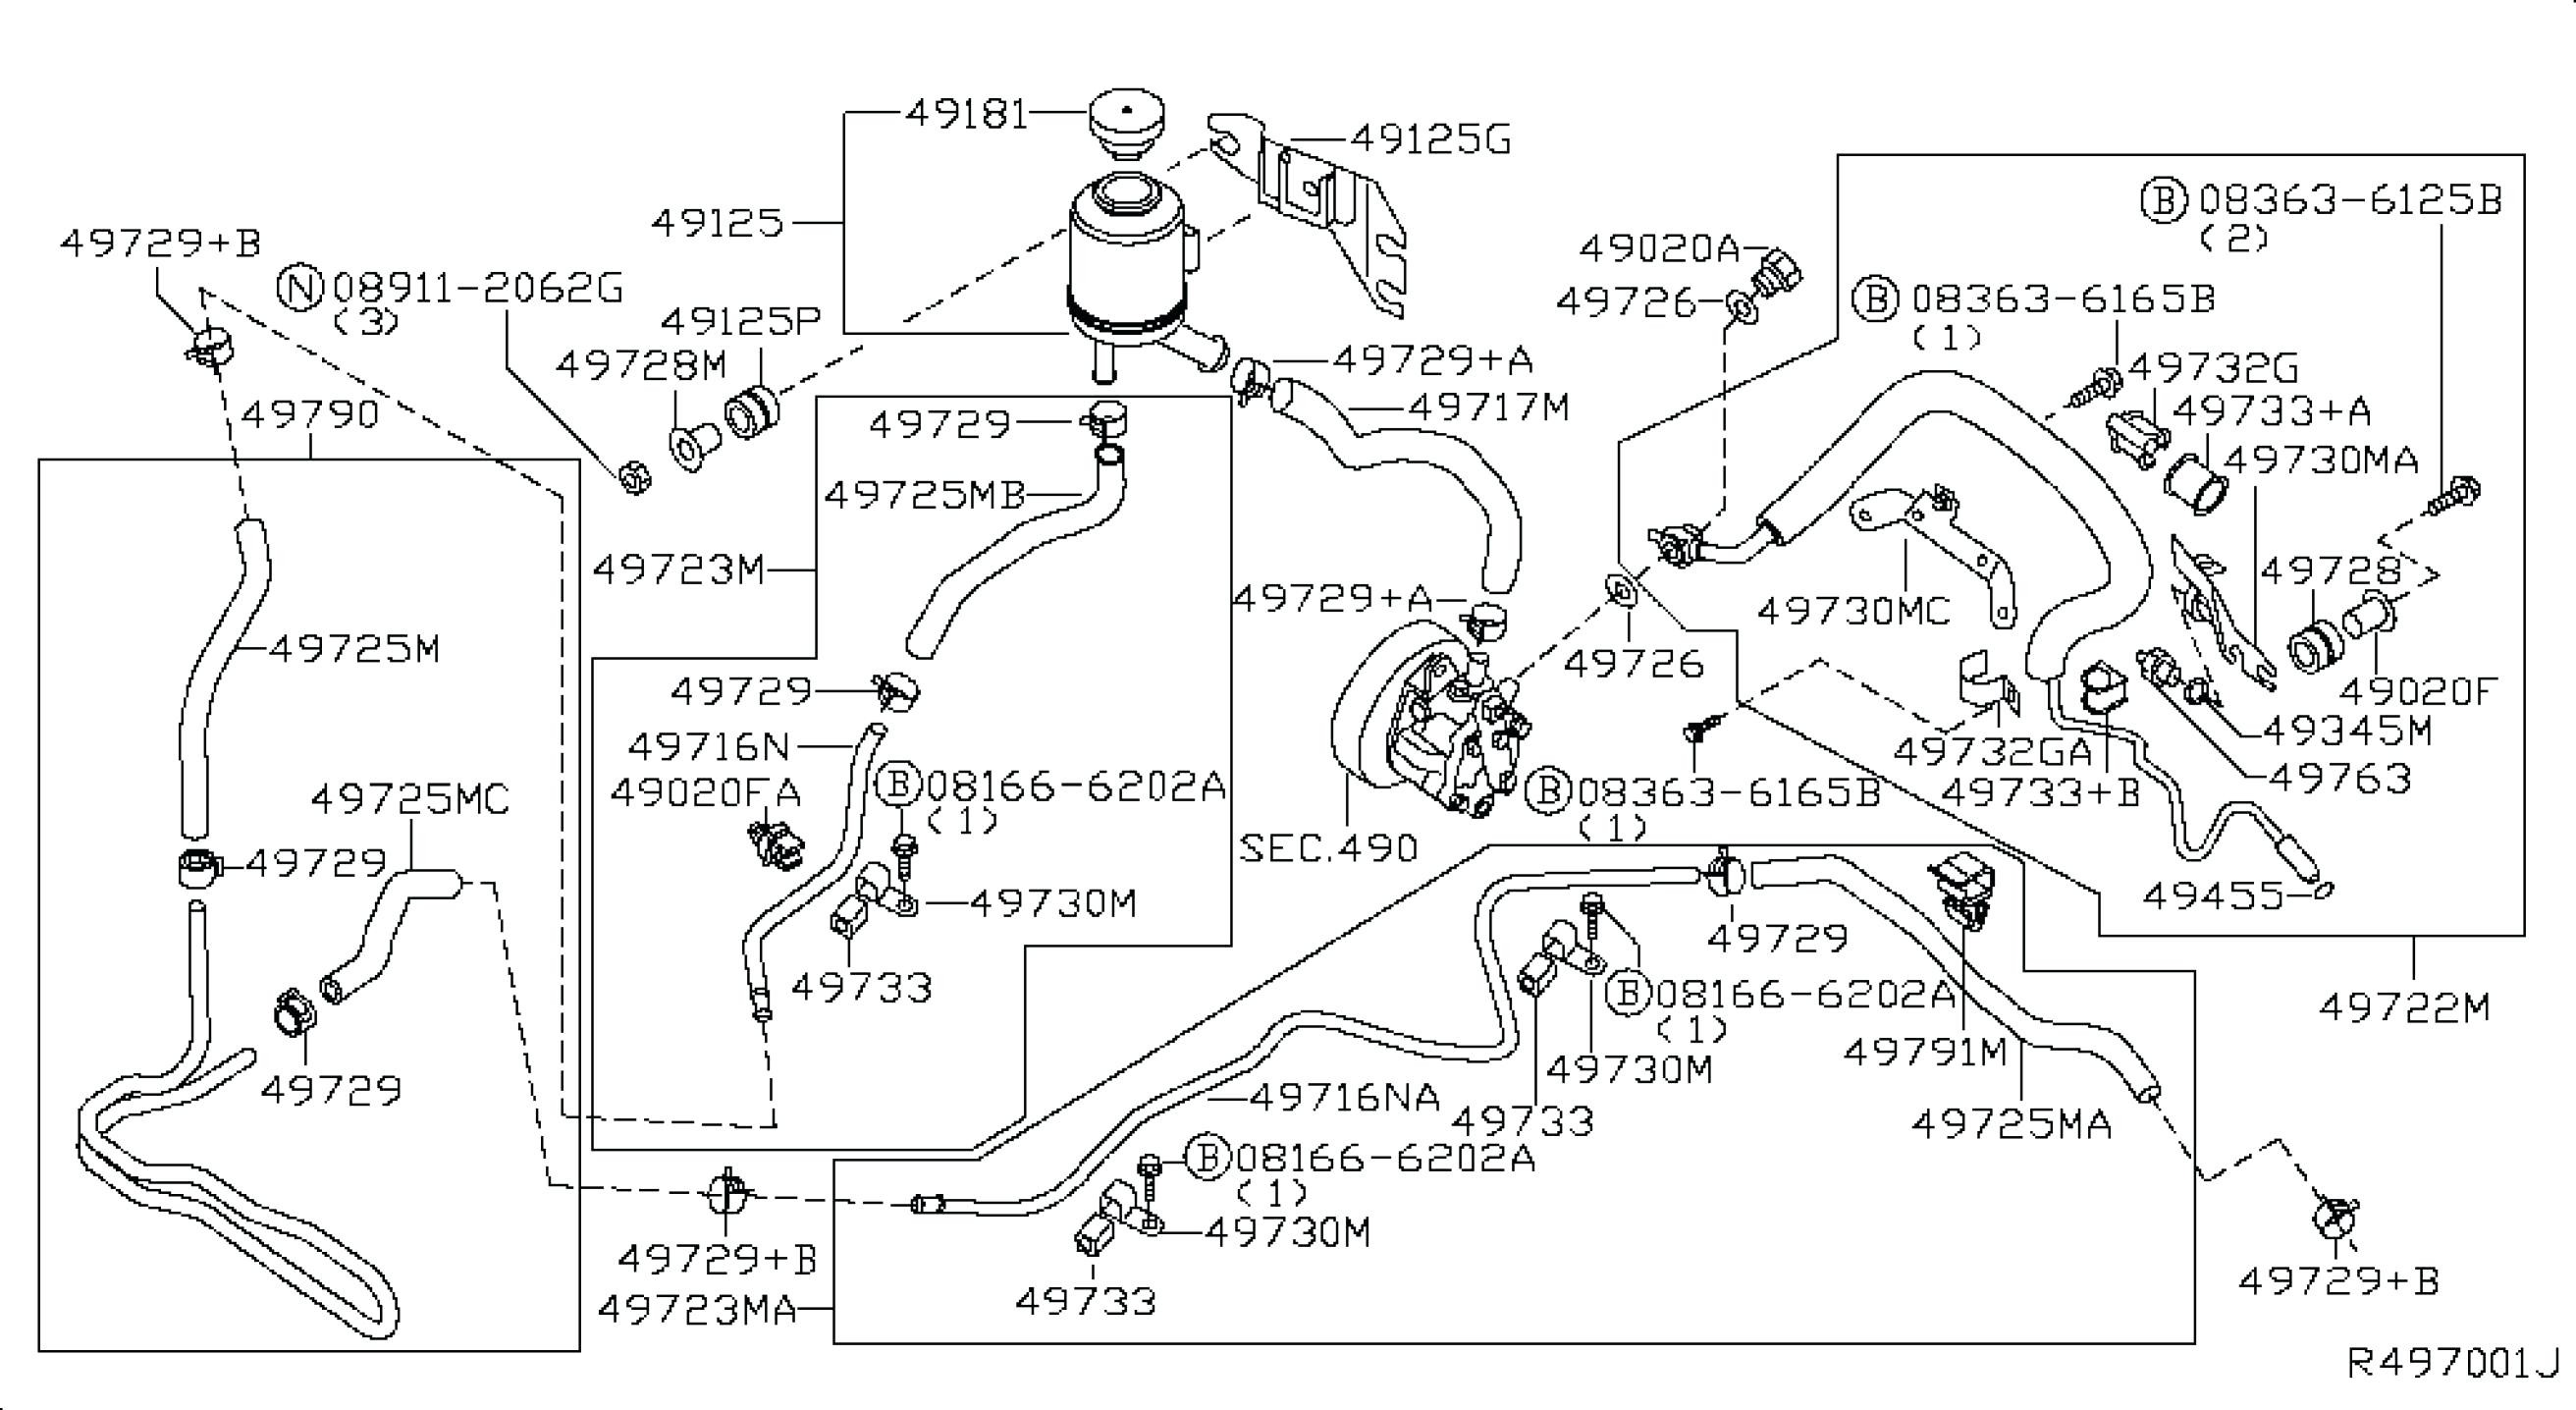 2002 subaru forester engine diagram  u2022 wiring diagram for free